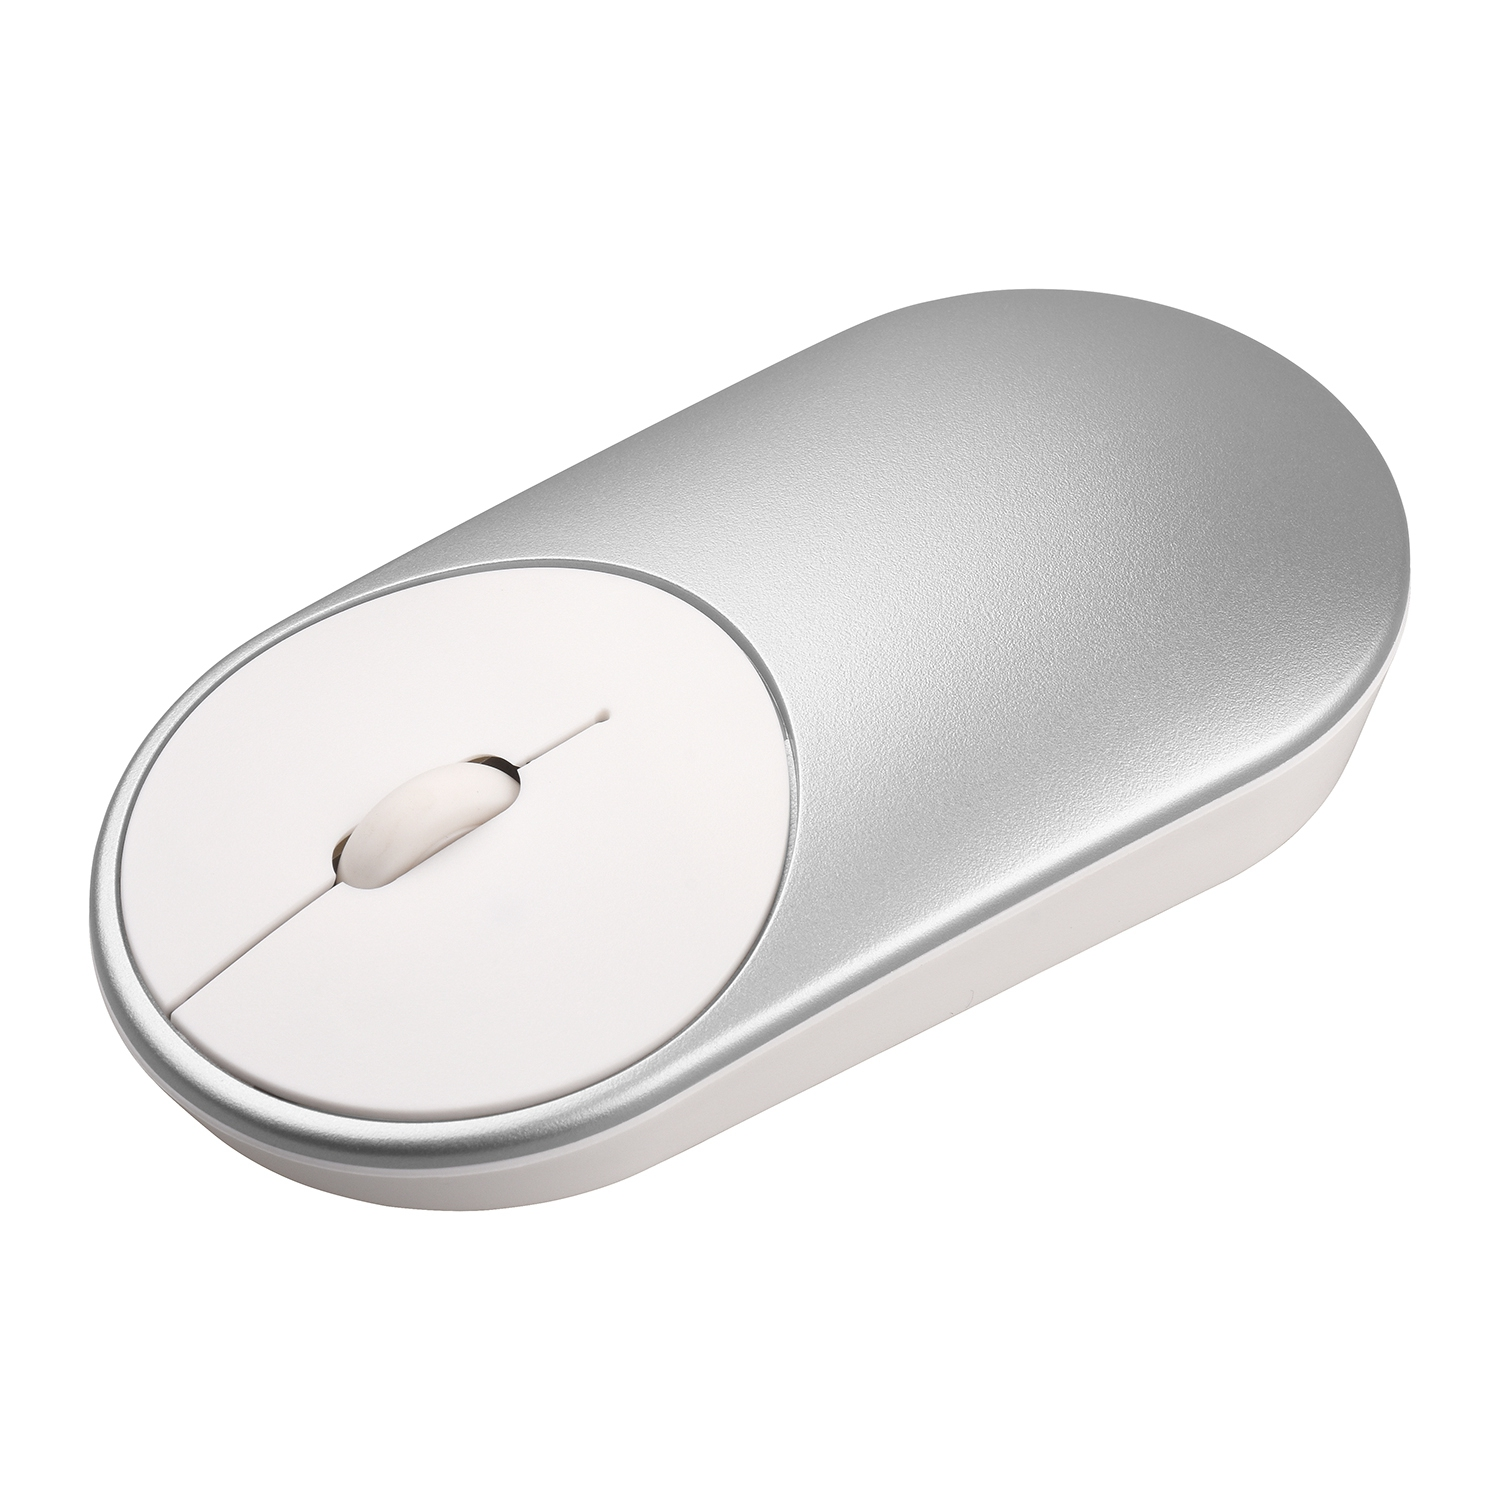 Mouse Portable Wireless In Stock Mi Optical Bluetooth 4.0 RF 2.4GHz Dual Mode Connect Mi Office Mouse